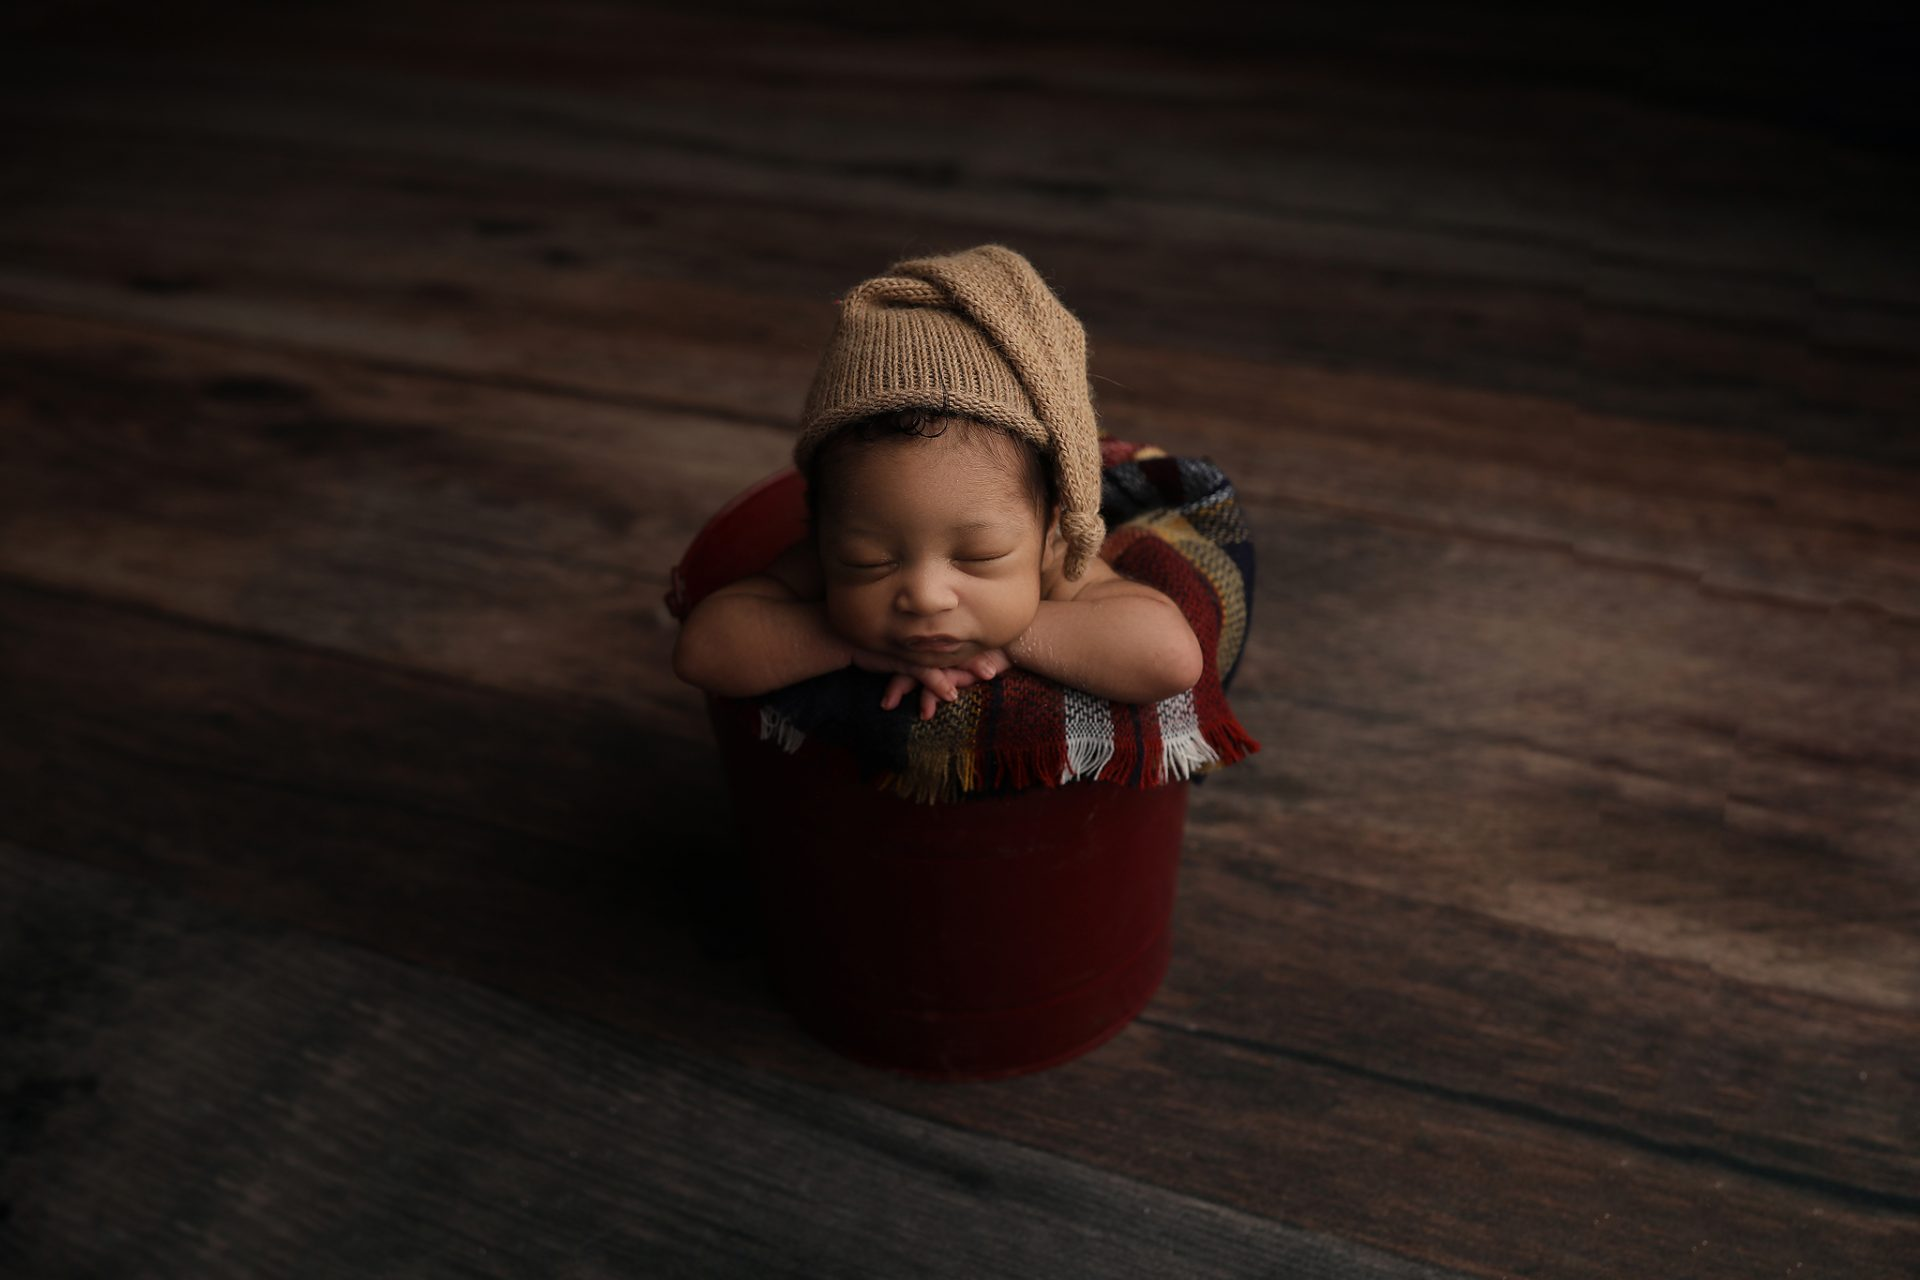 Cute baby pictures tucson